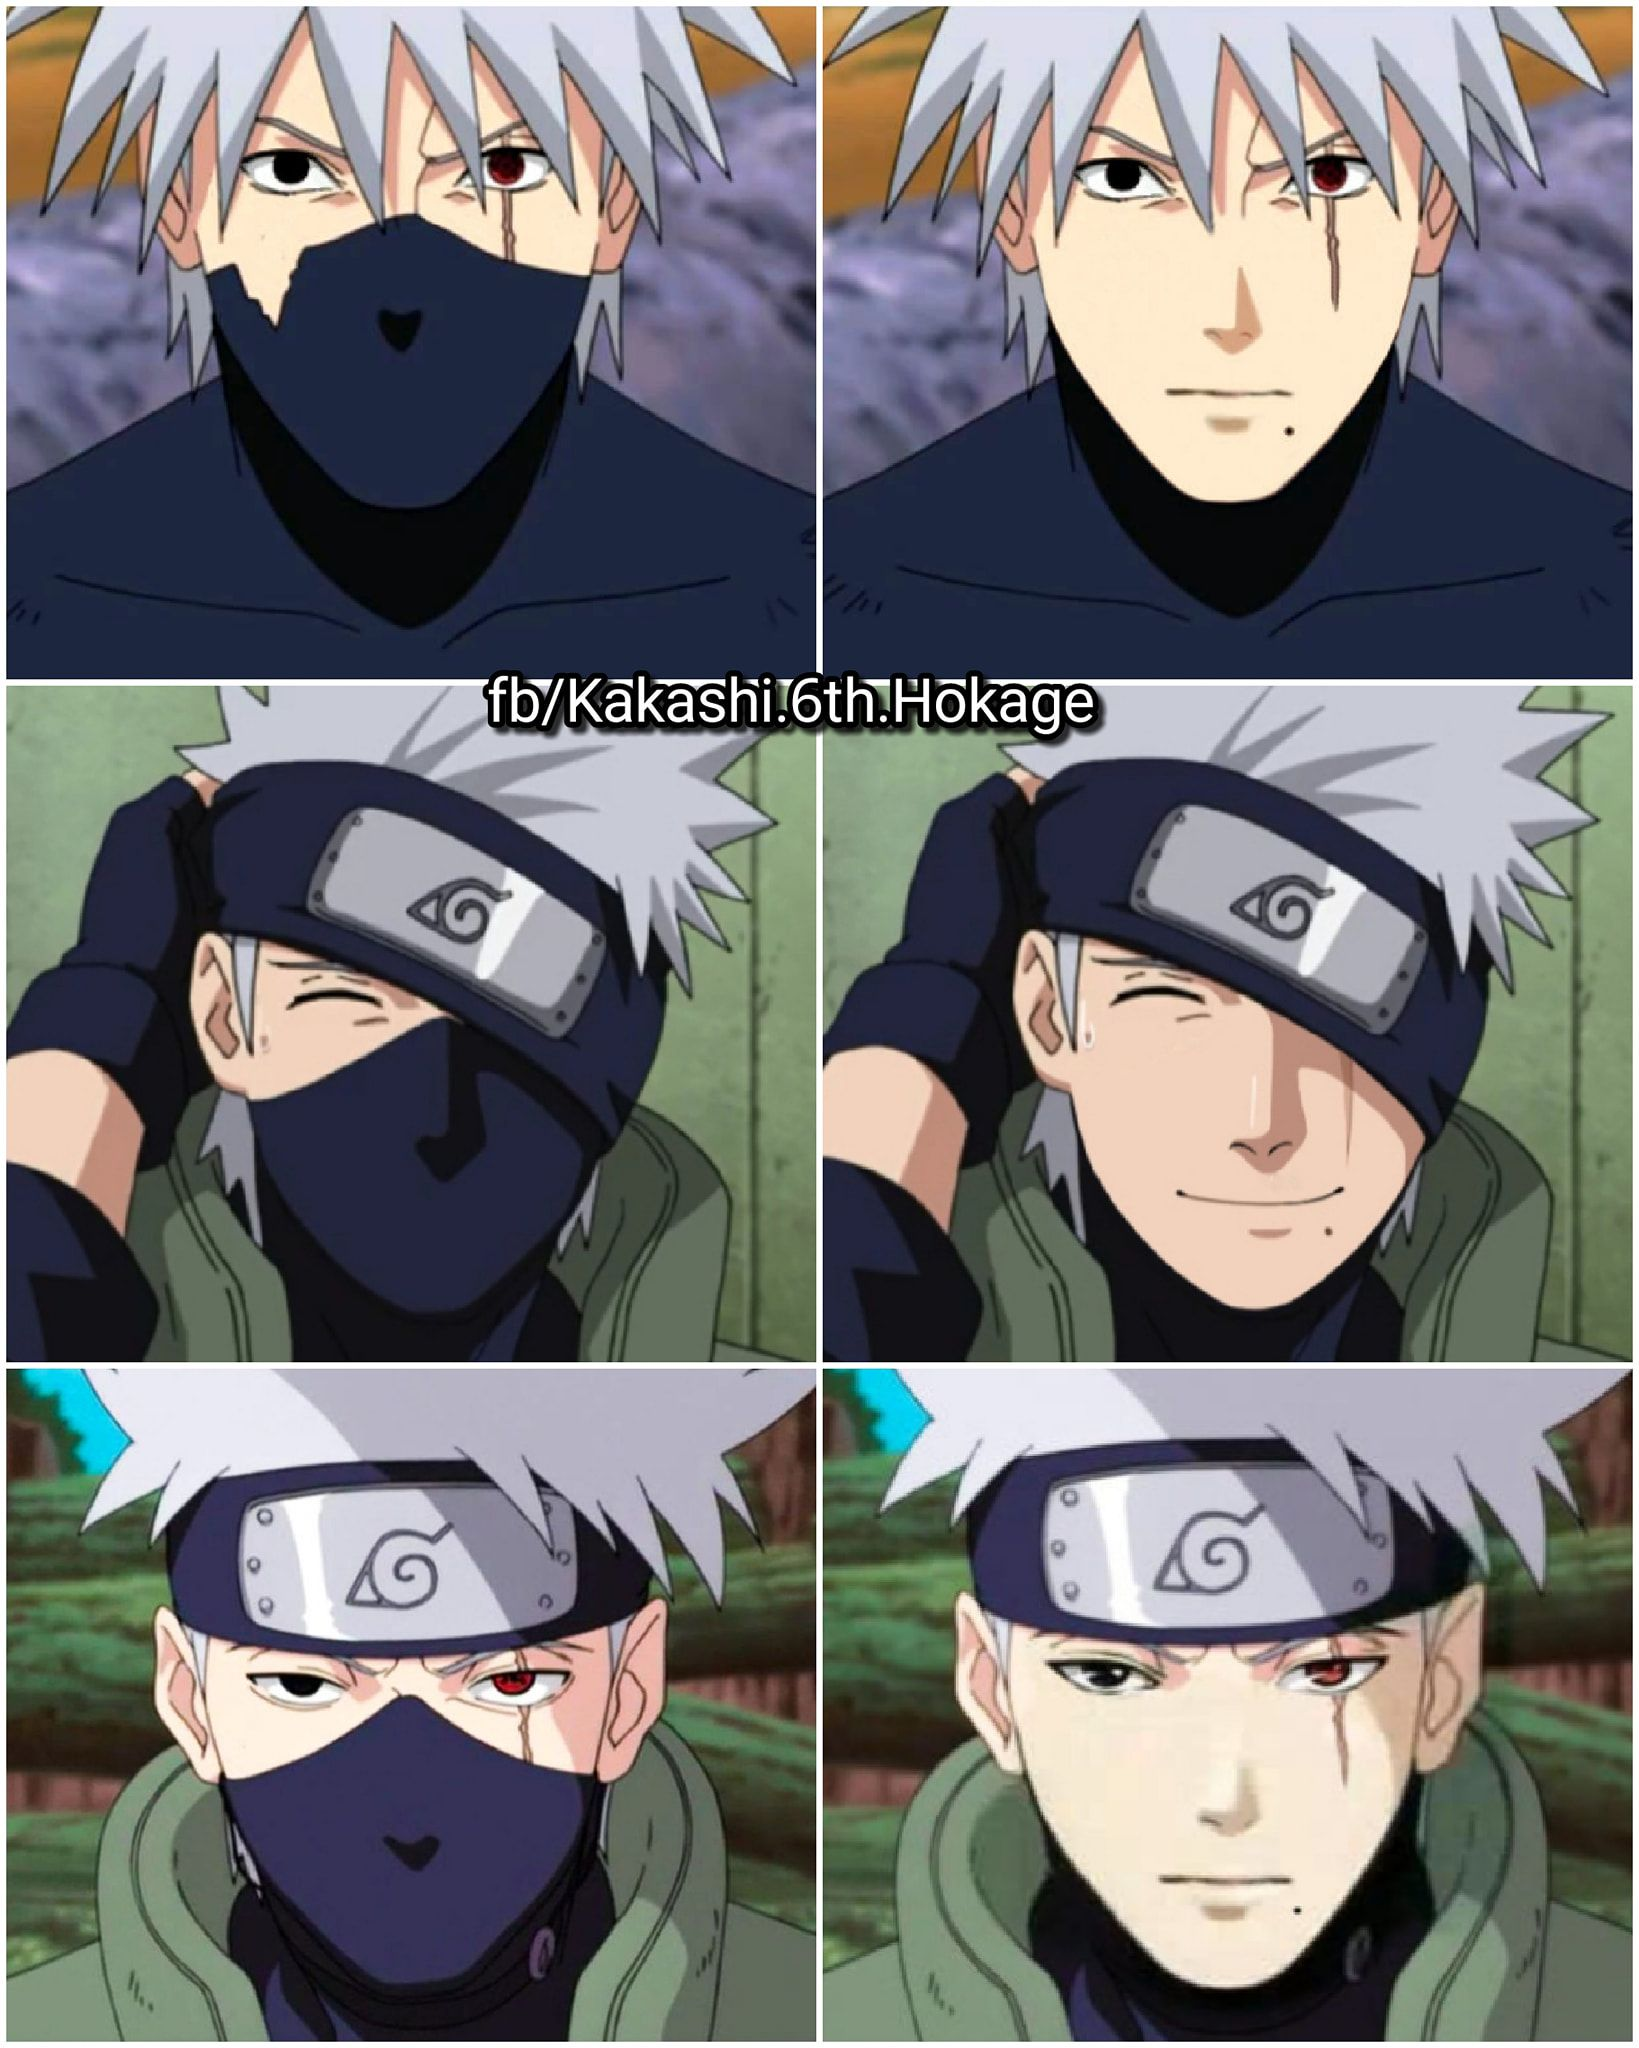 Pin by Rebecca Zappe on Naruto (With images) Anime